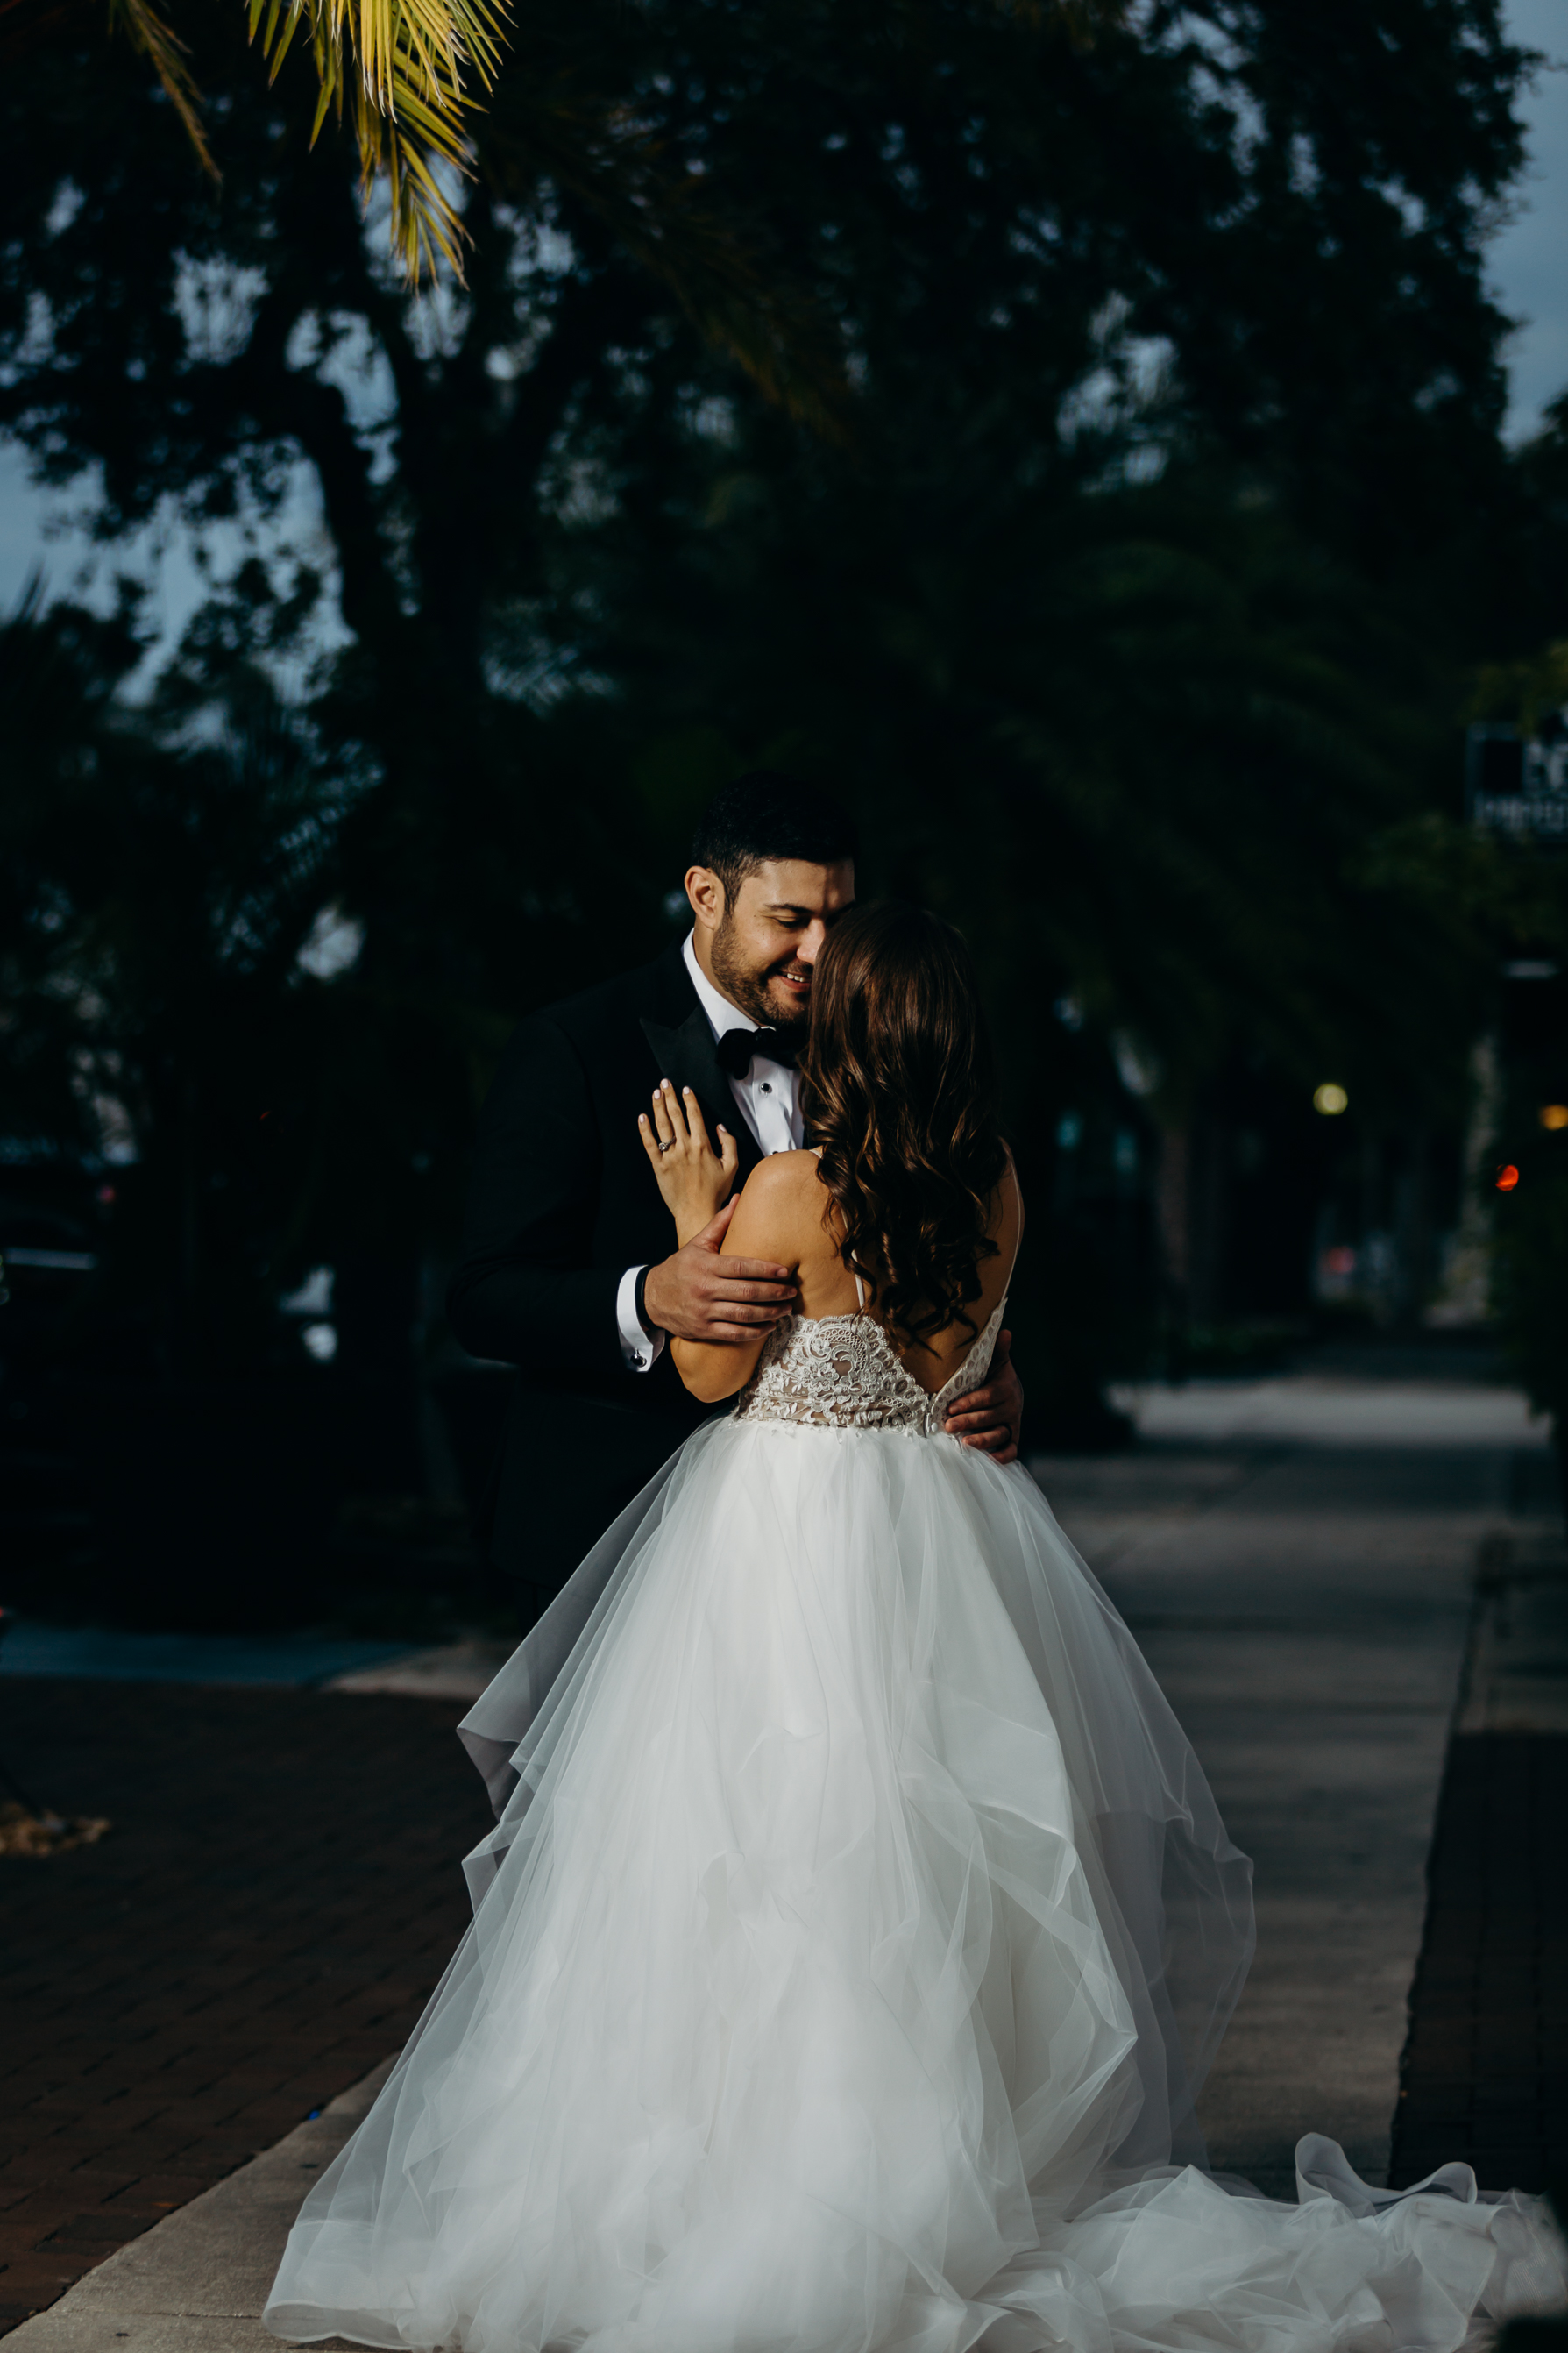 Gianna Keiko Atlanta San Francisco NYC Wedding Engagement Wedding Elopement Photographer_Sneak Peek-63.jpg